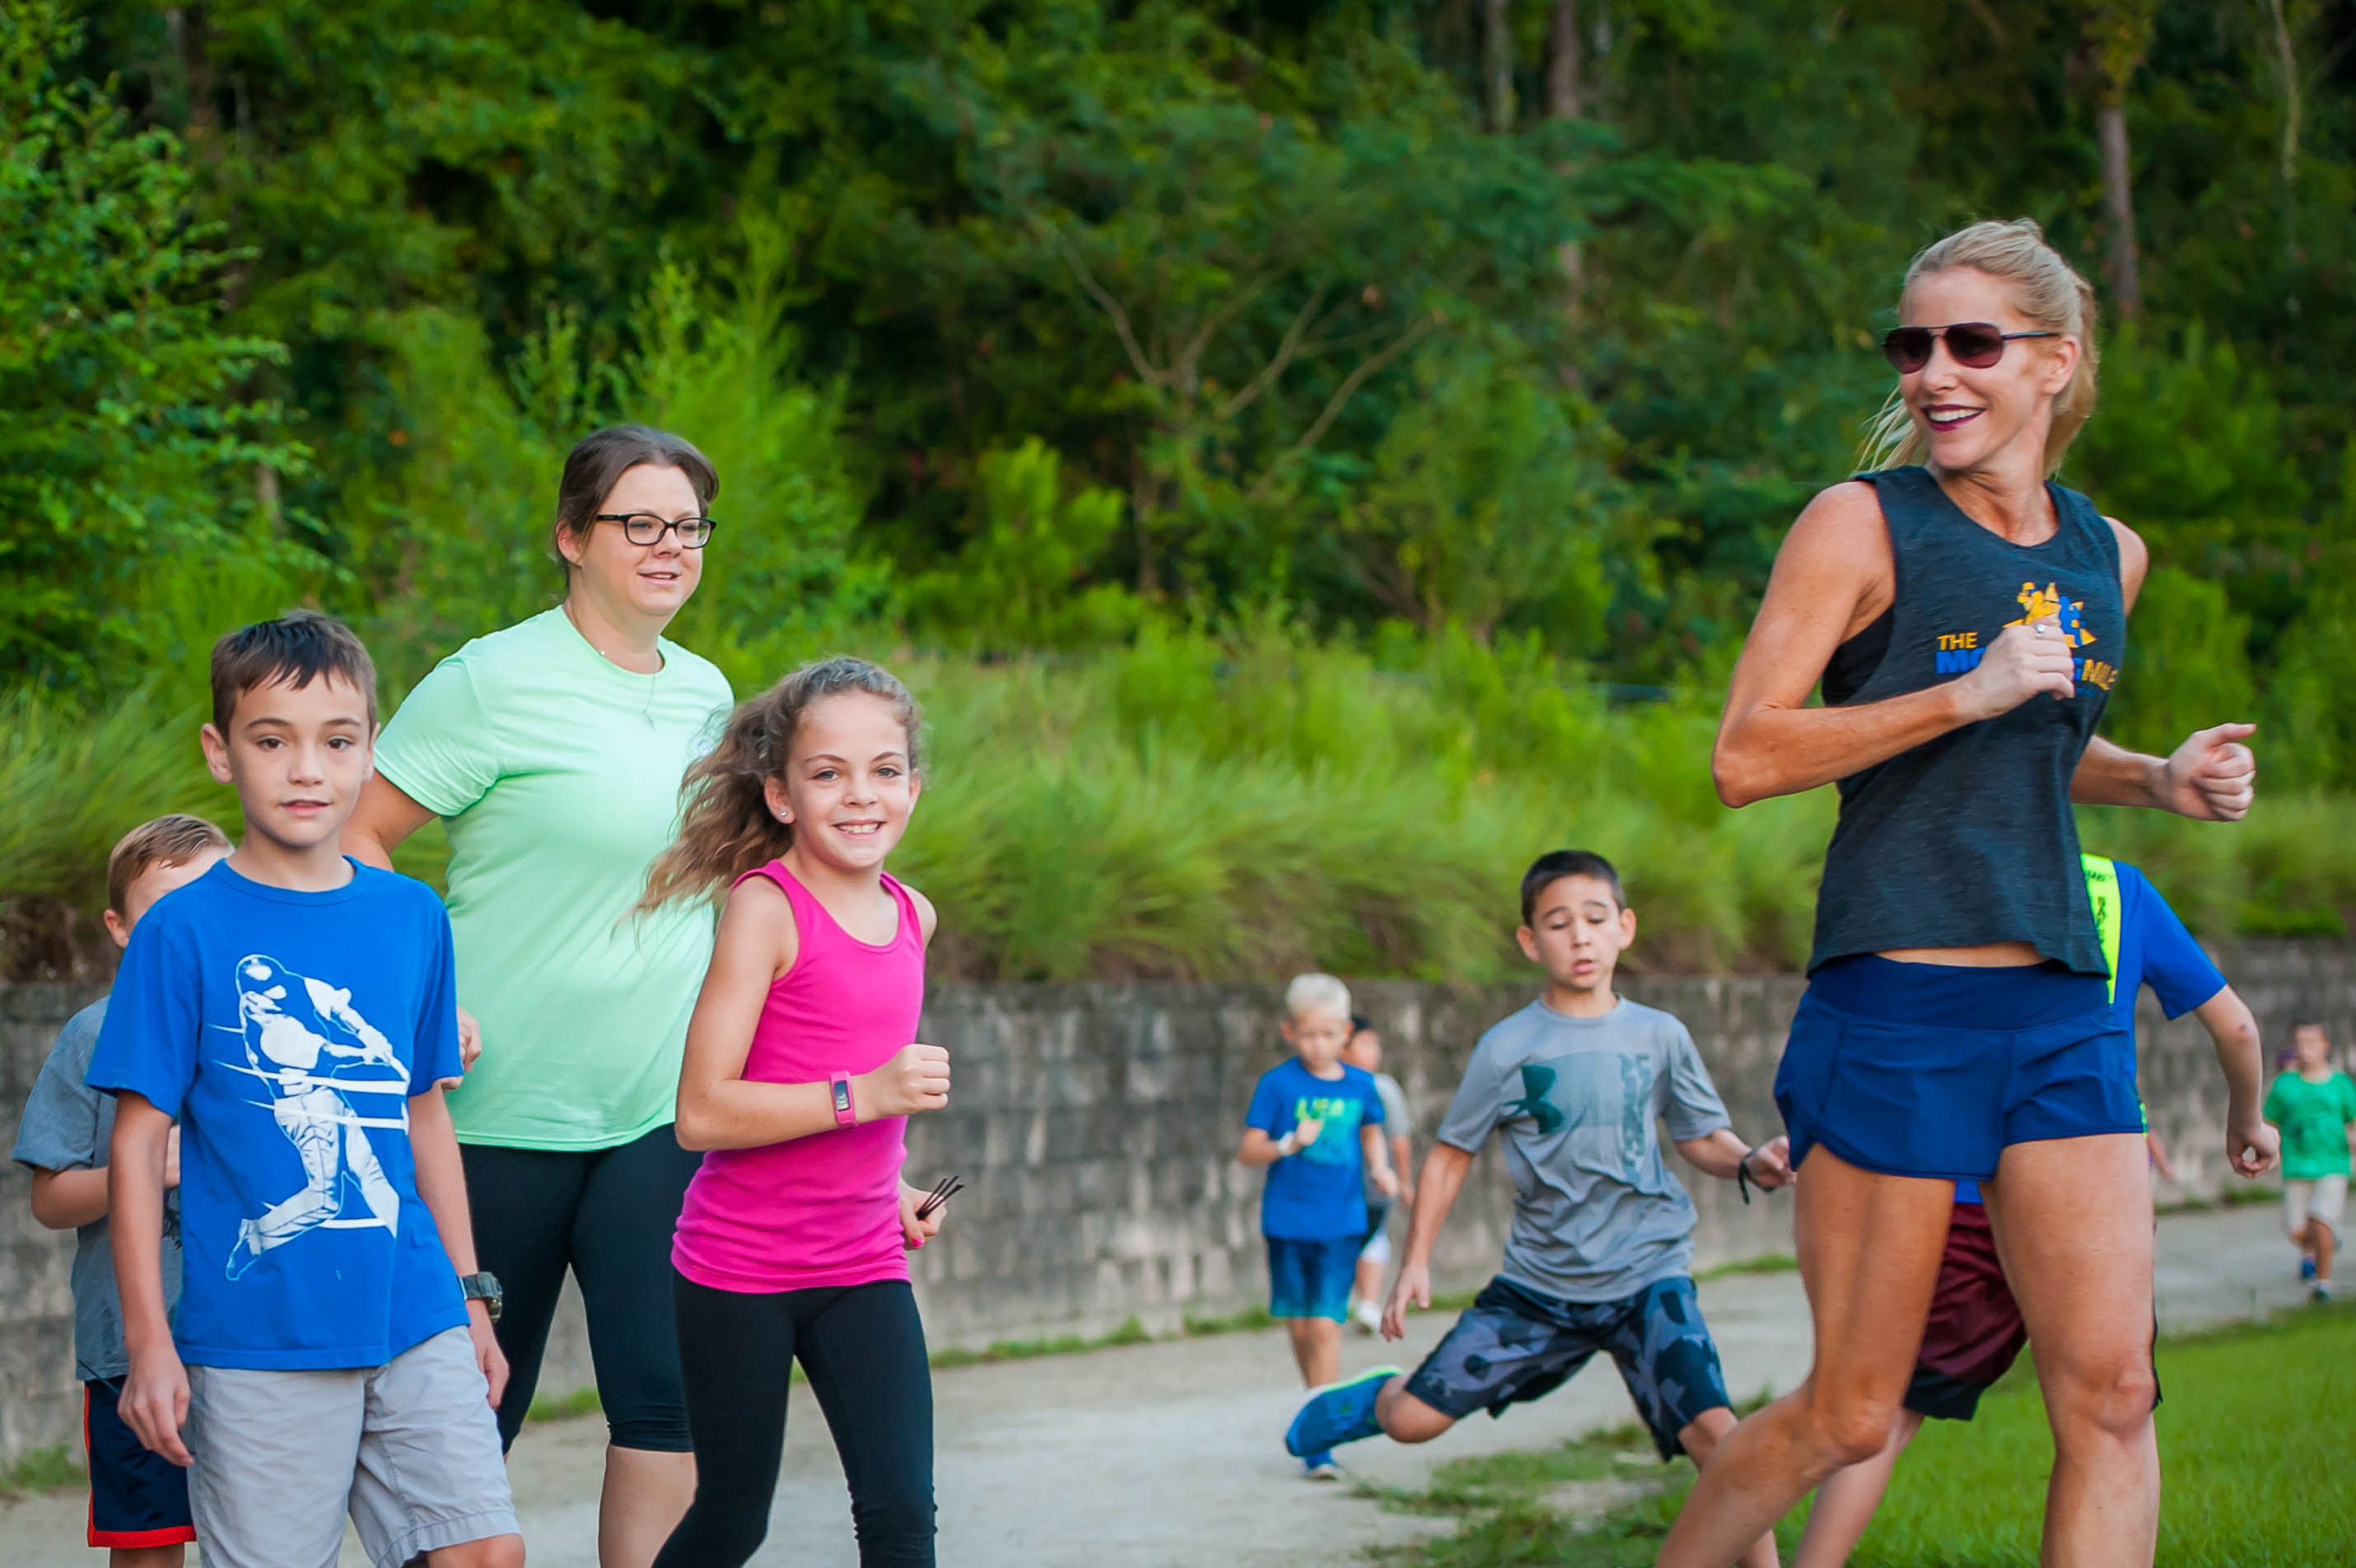 Morning Mile – Morning Mile Schools